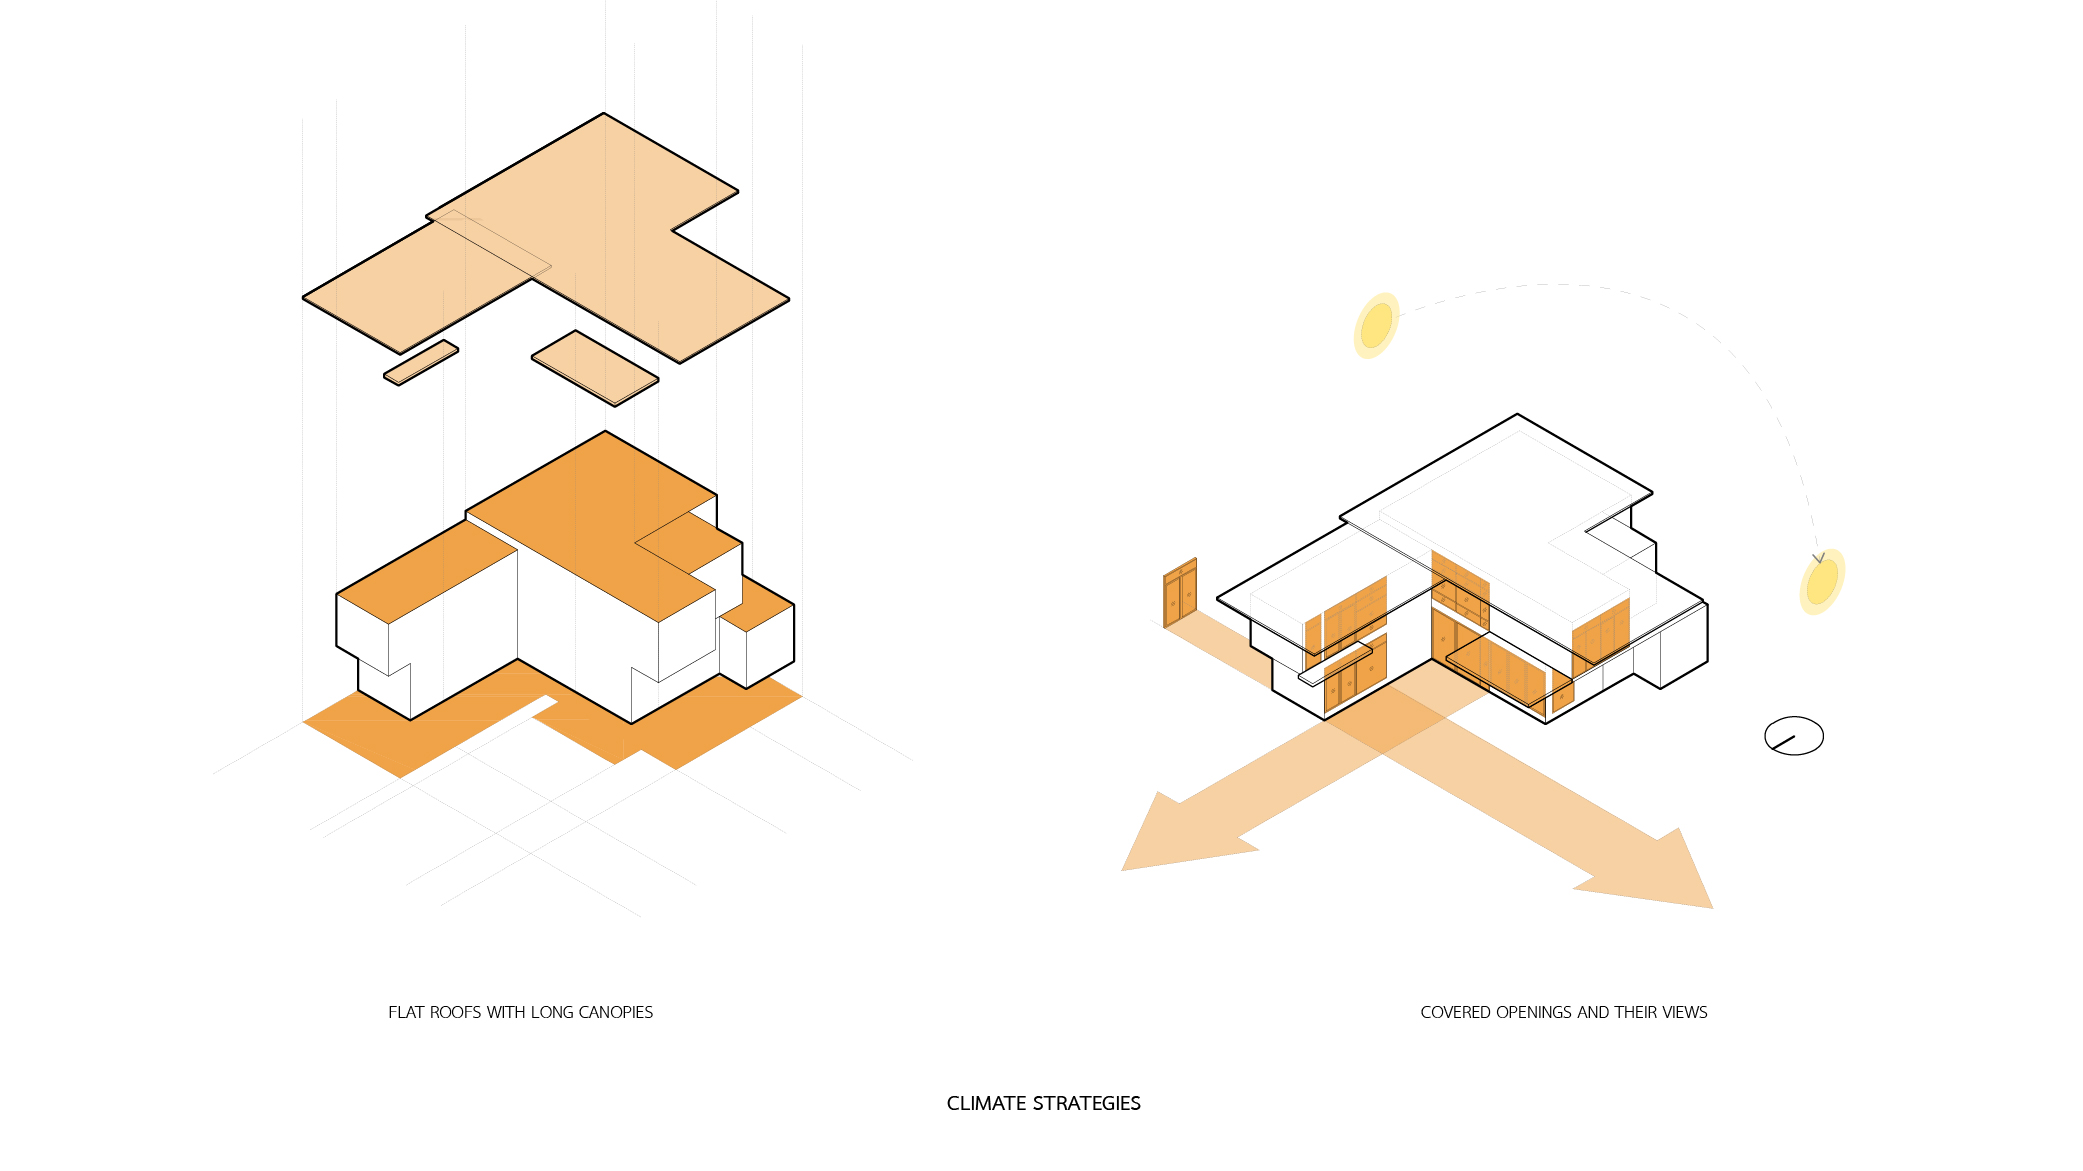 lighting architecture diagram animal vs plant cell bangbuathong house chaan a d graphic design 02 jpg